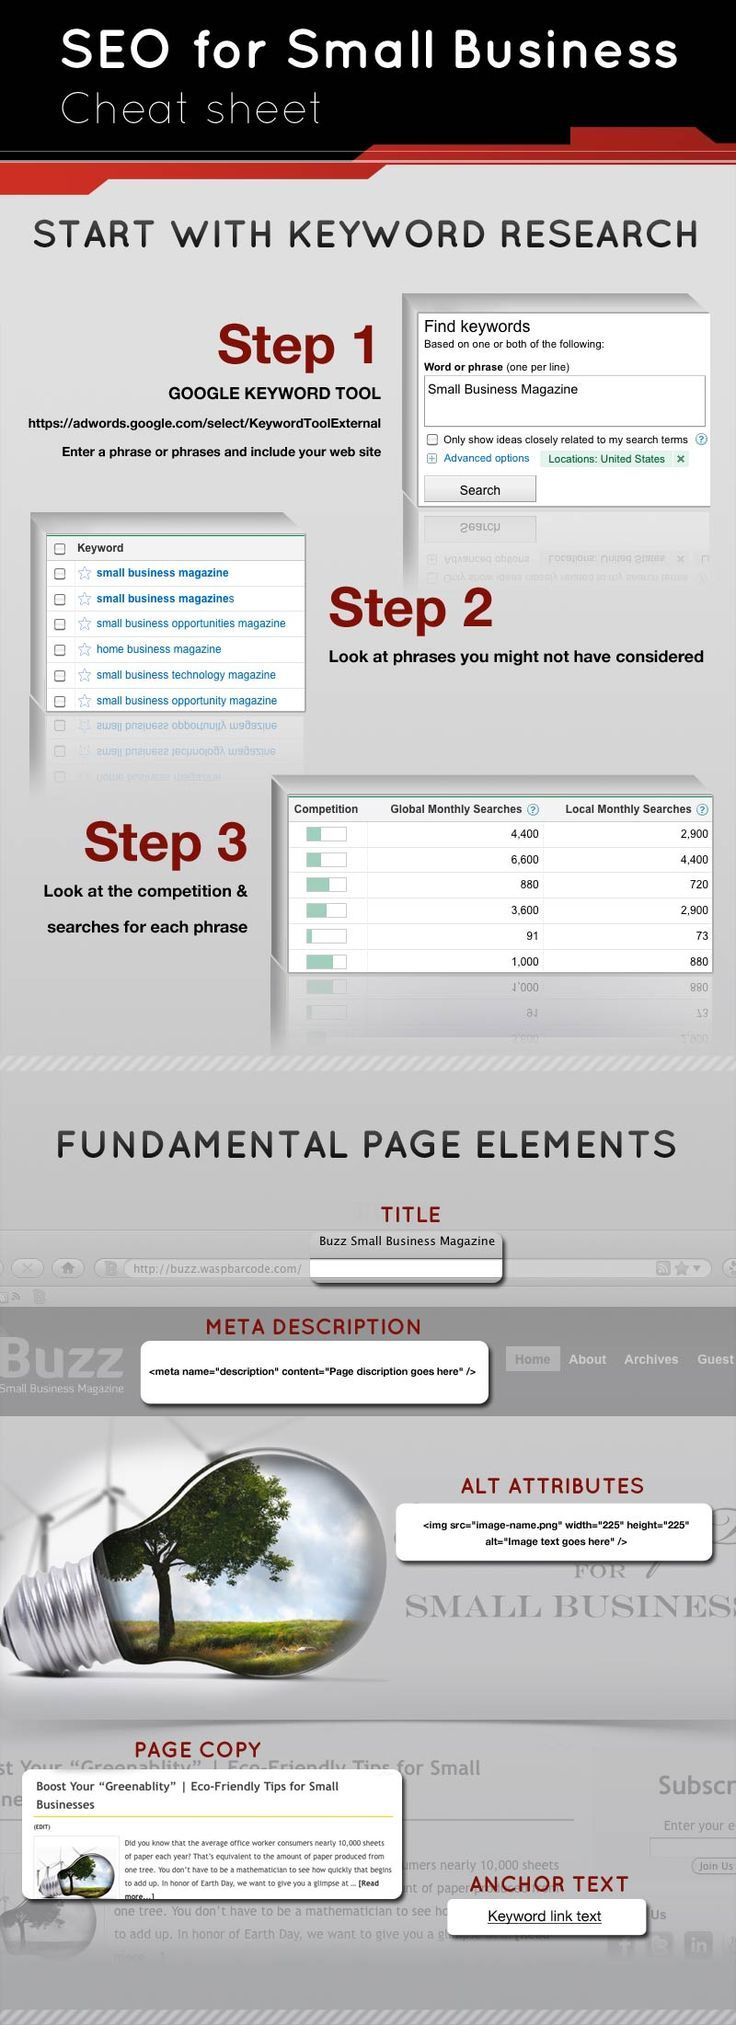 Backlink Beast is system built, it has built a complete onpage SEO process, along with the perfect backlink building process by topic. It will help your site to top Google in the shortest time. http://www.backlinkbeastx.com/backlink-beast-review - Love a good success story? Learn how I went from zero to 1 million in sales in 5 months with an e-commerce store.